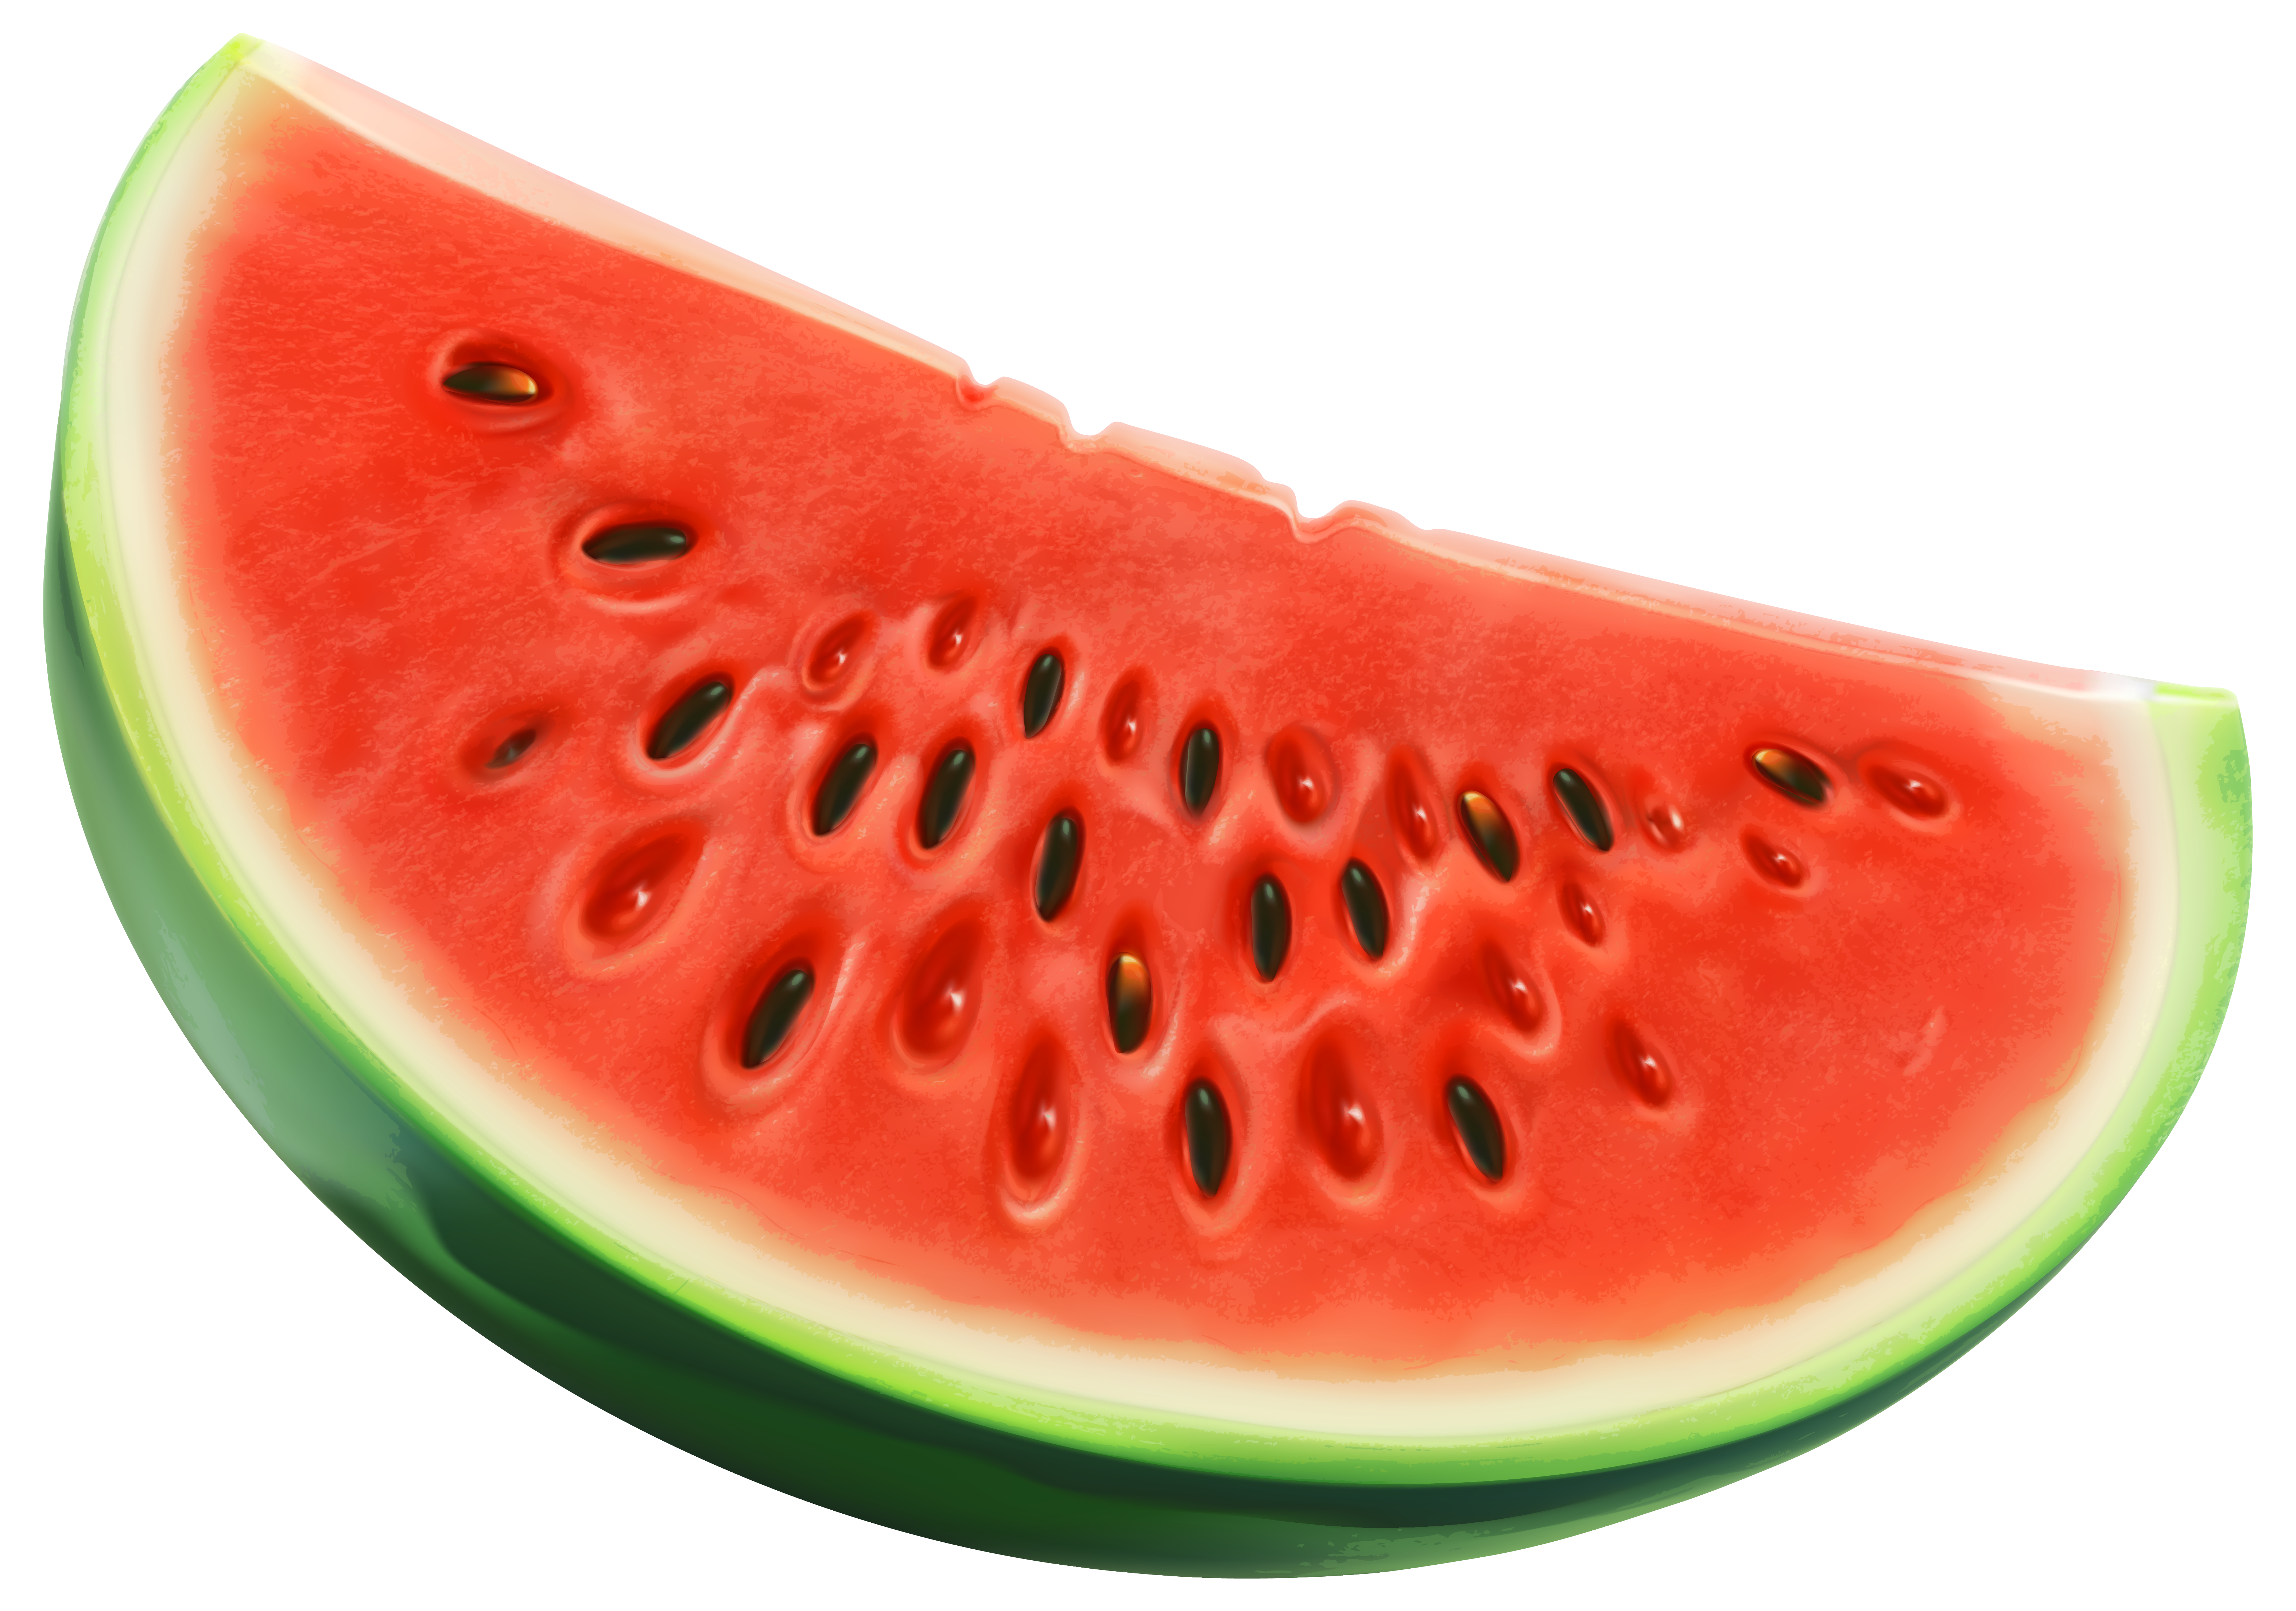 Piece of png image. Watermelon clipart watermelon day